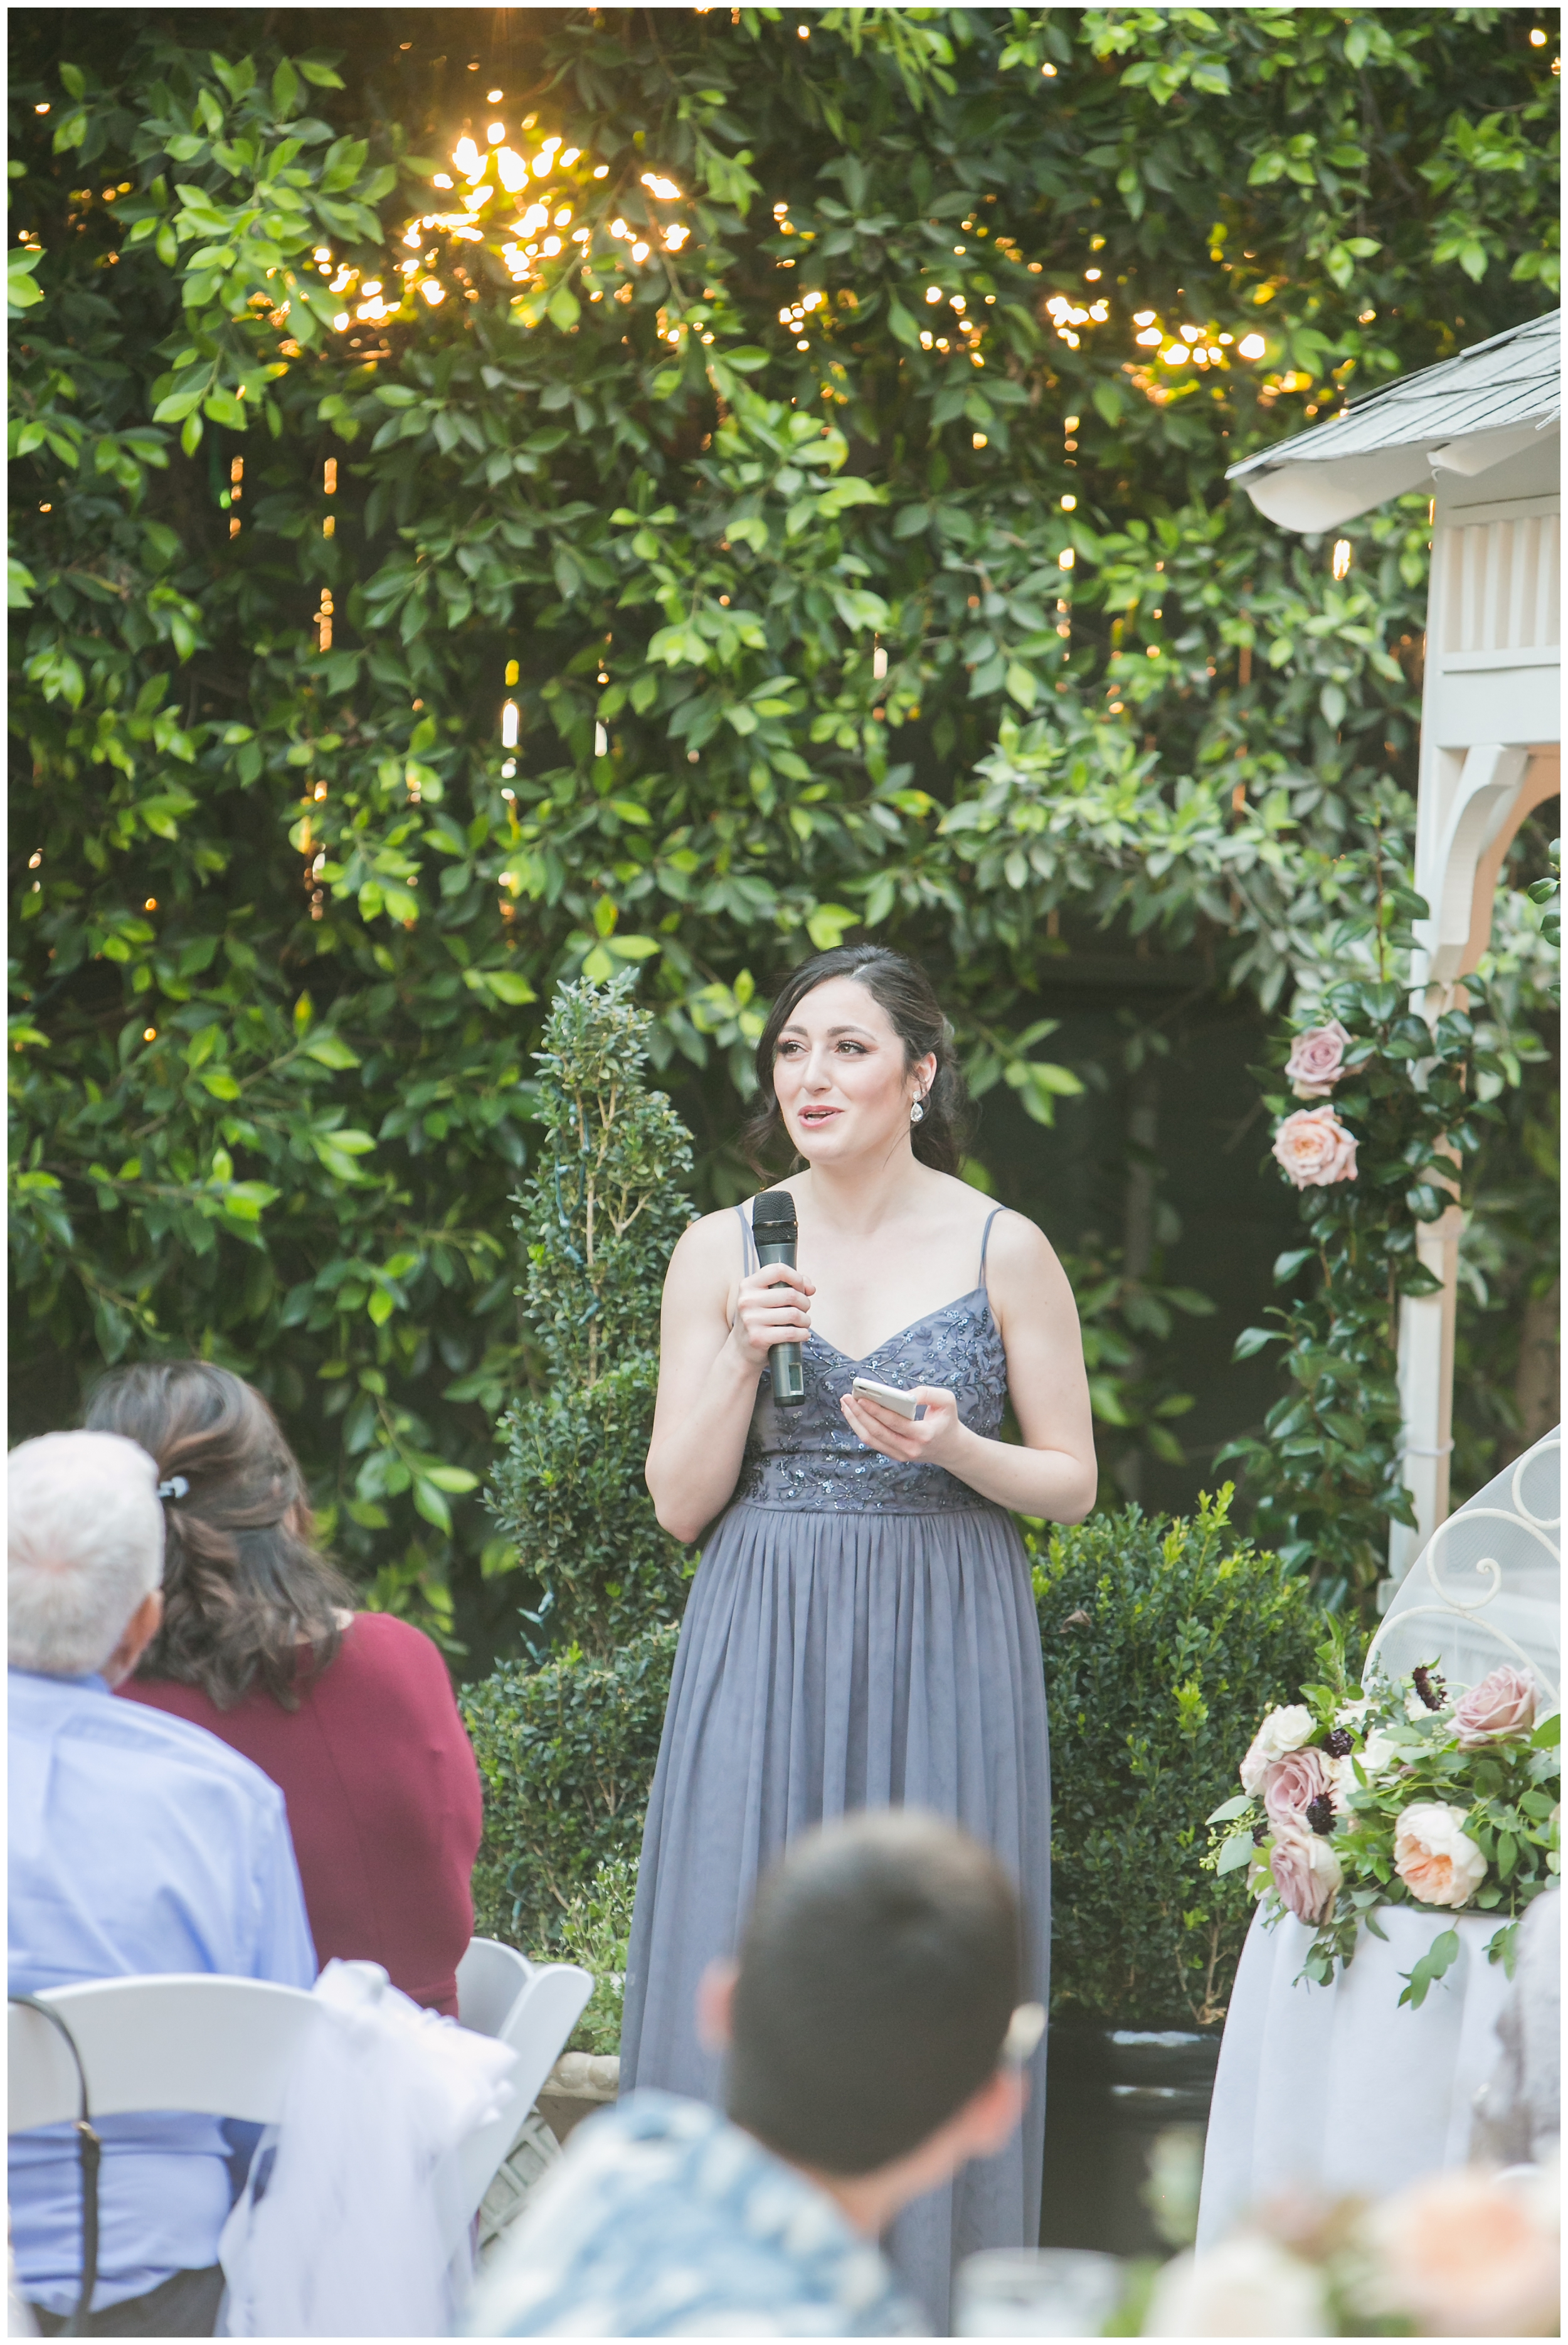 chic-christmas-house-wedding-reception-toasts-carrie-vines-033.jpg